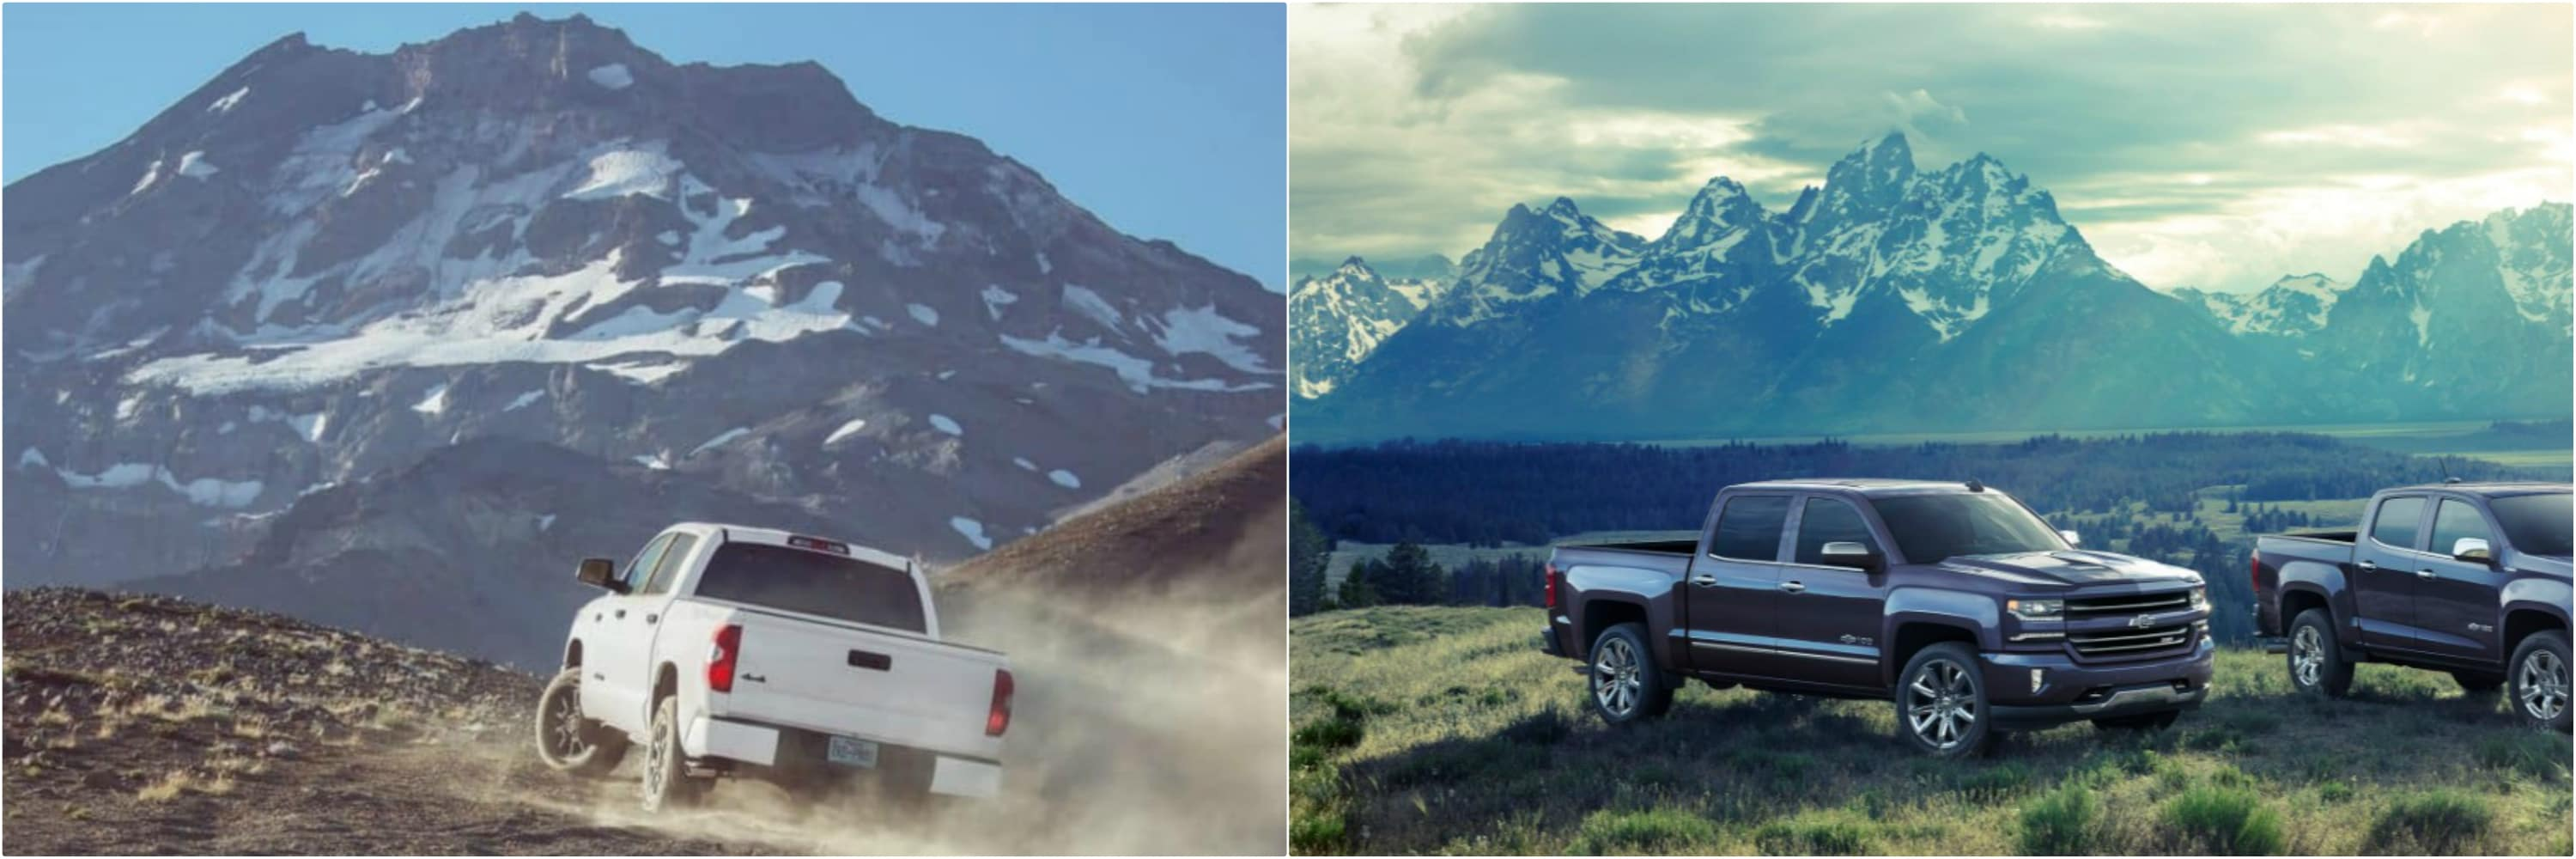 A 2018 Tundra driving in the mountains with a 2018 Silverado